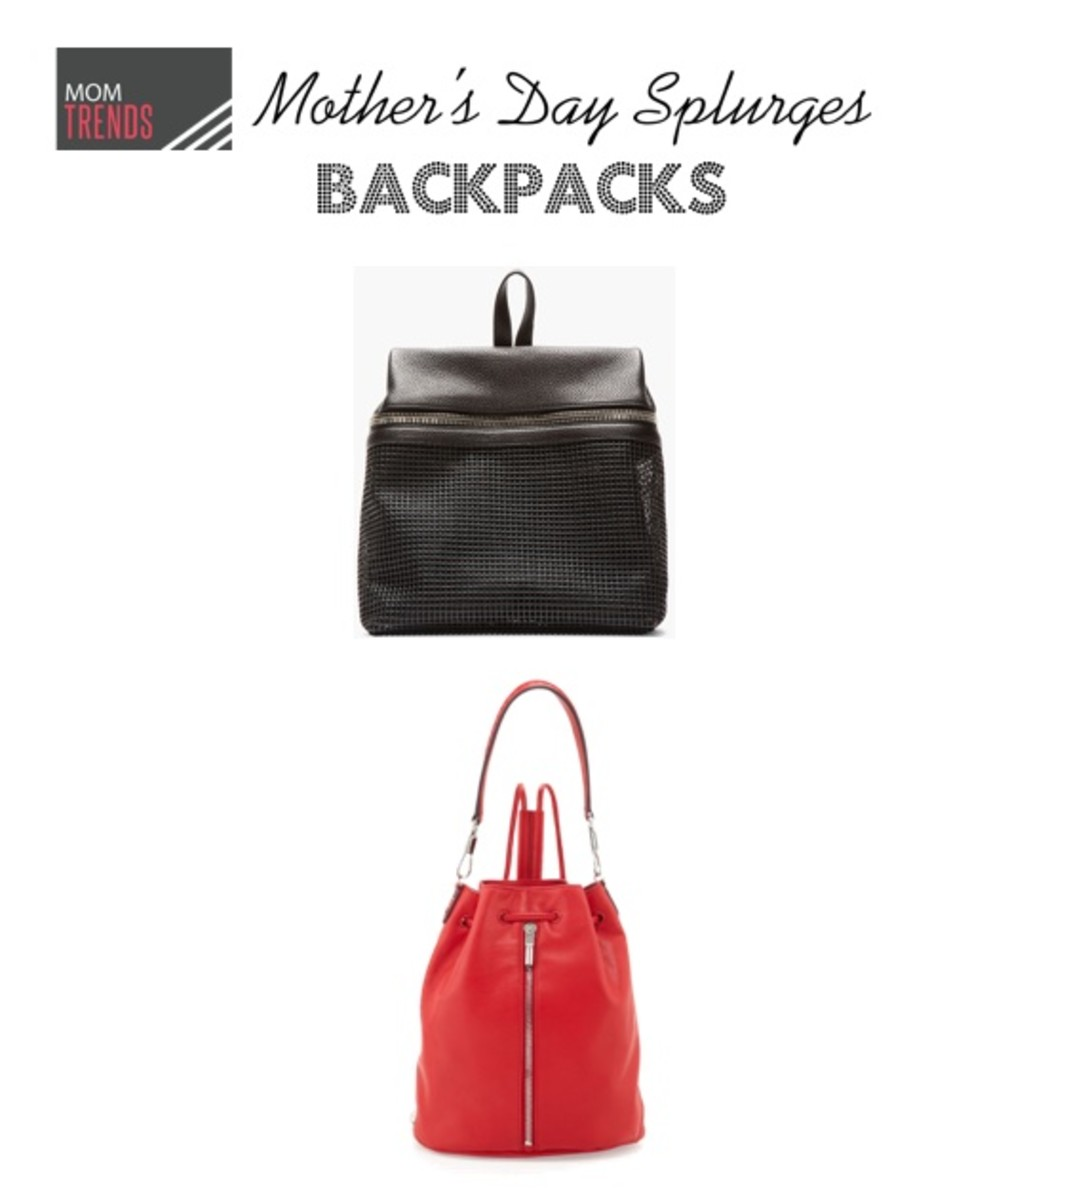 Mother's Day Bags to Splurge On - Backpacks